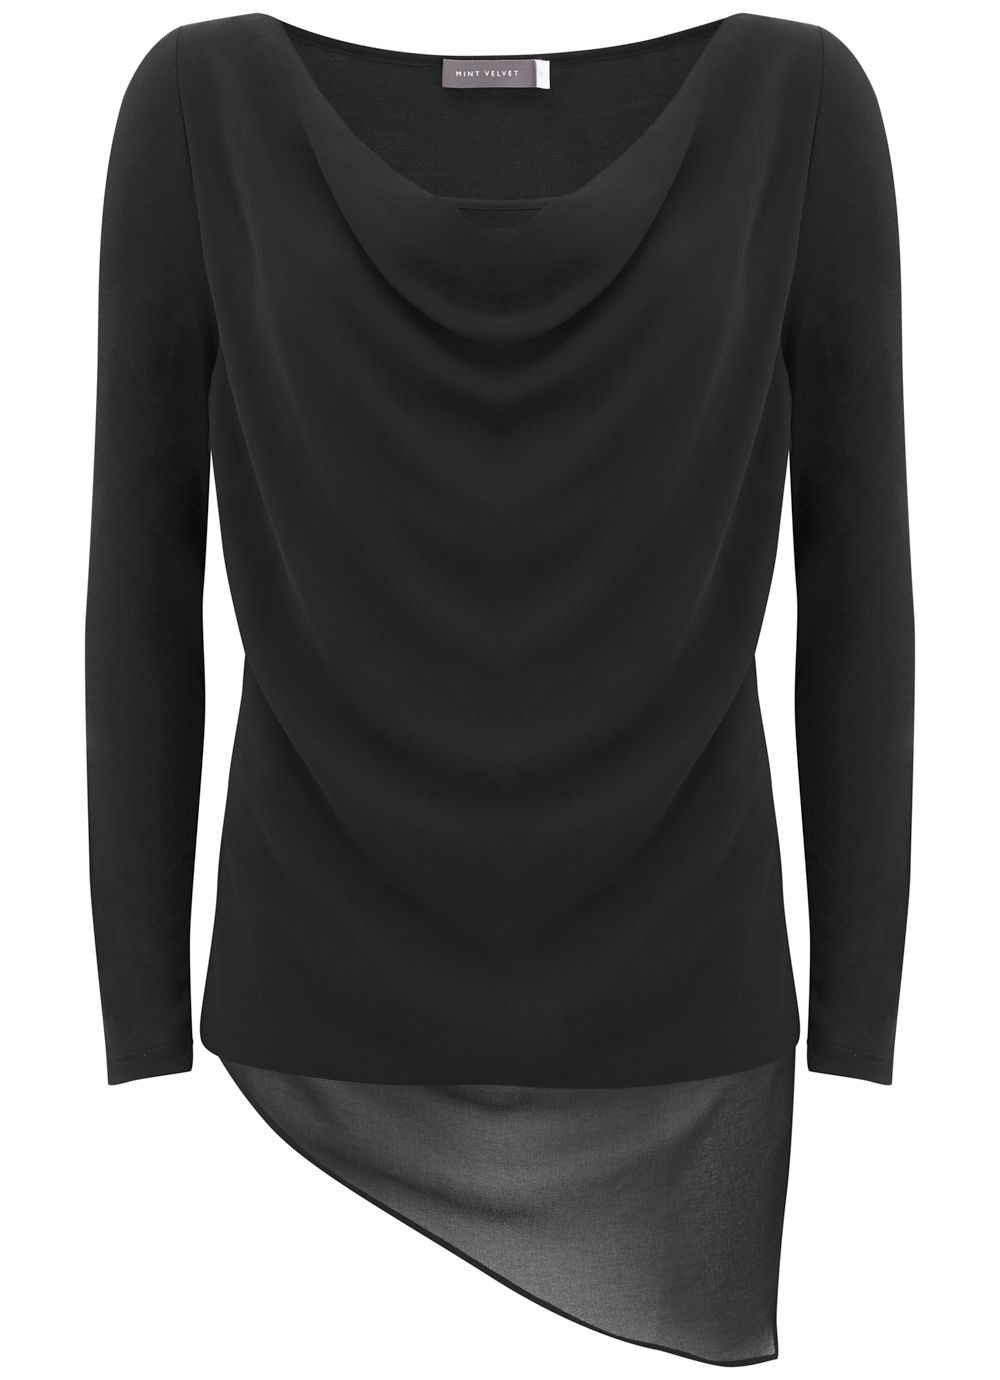 Mint Velvet Black Asymmetric Double Layer Tee, Black